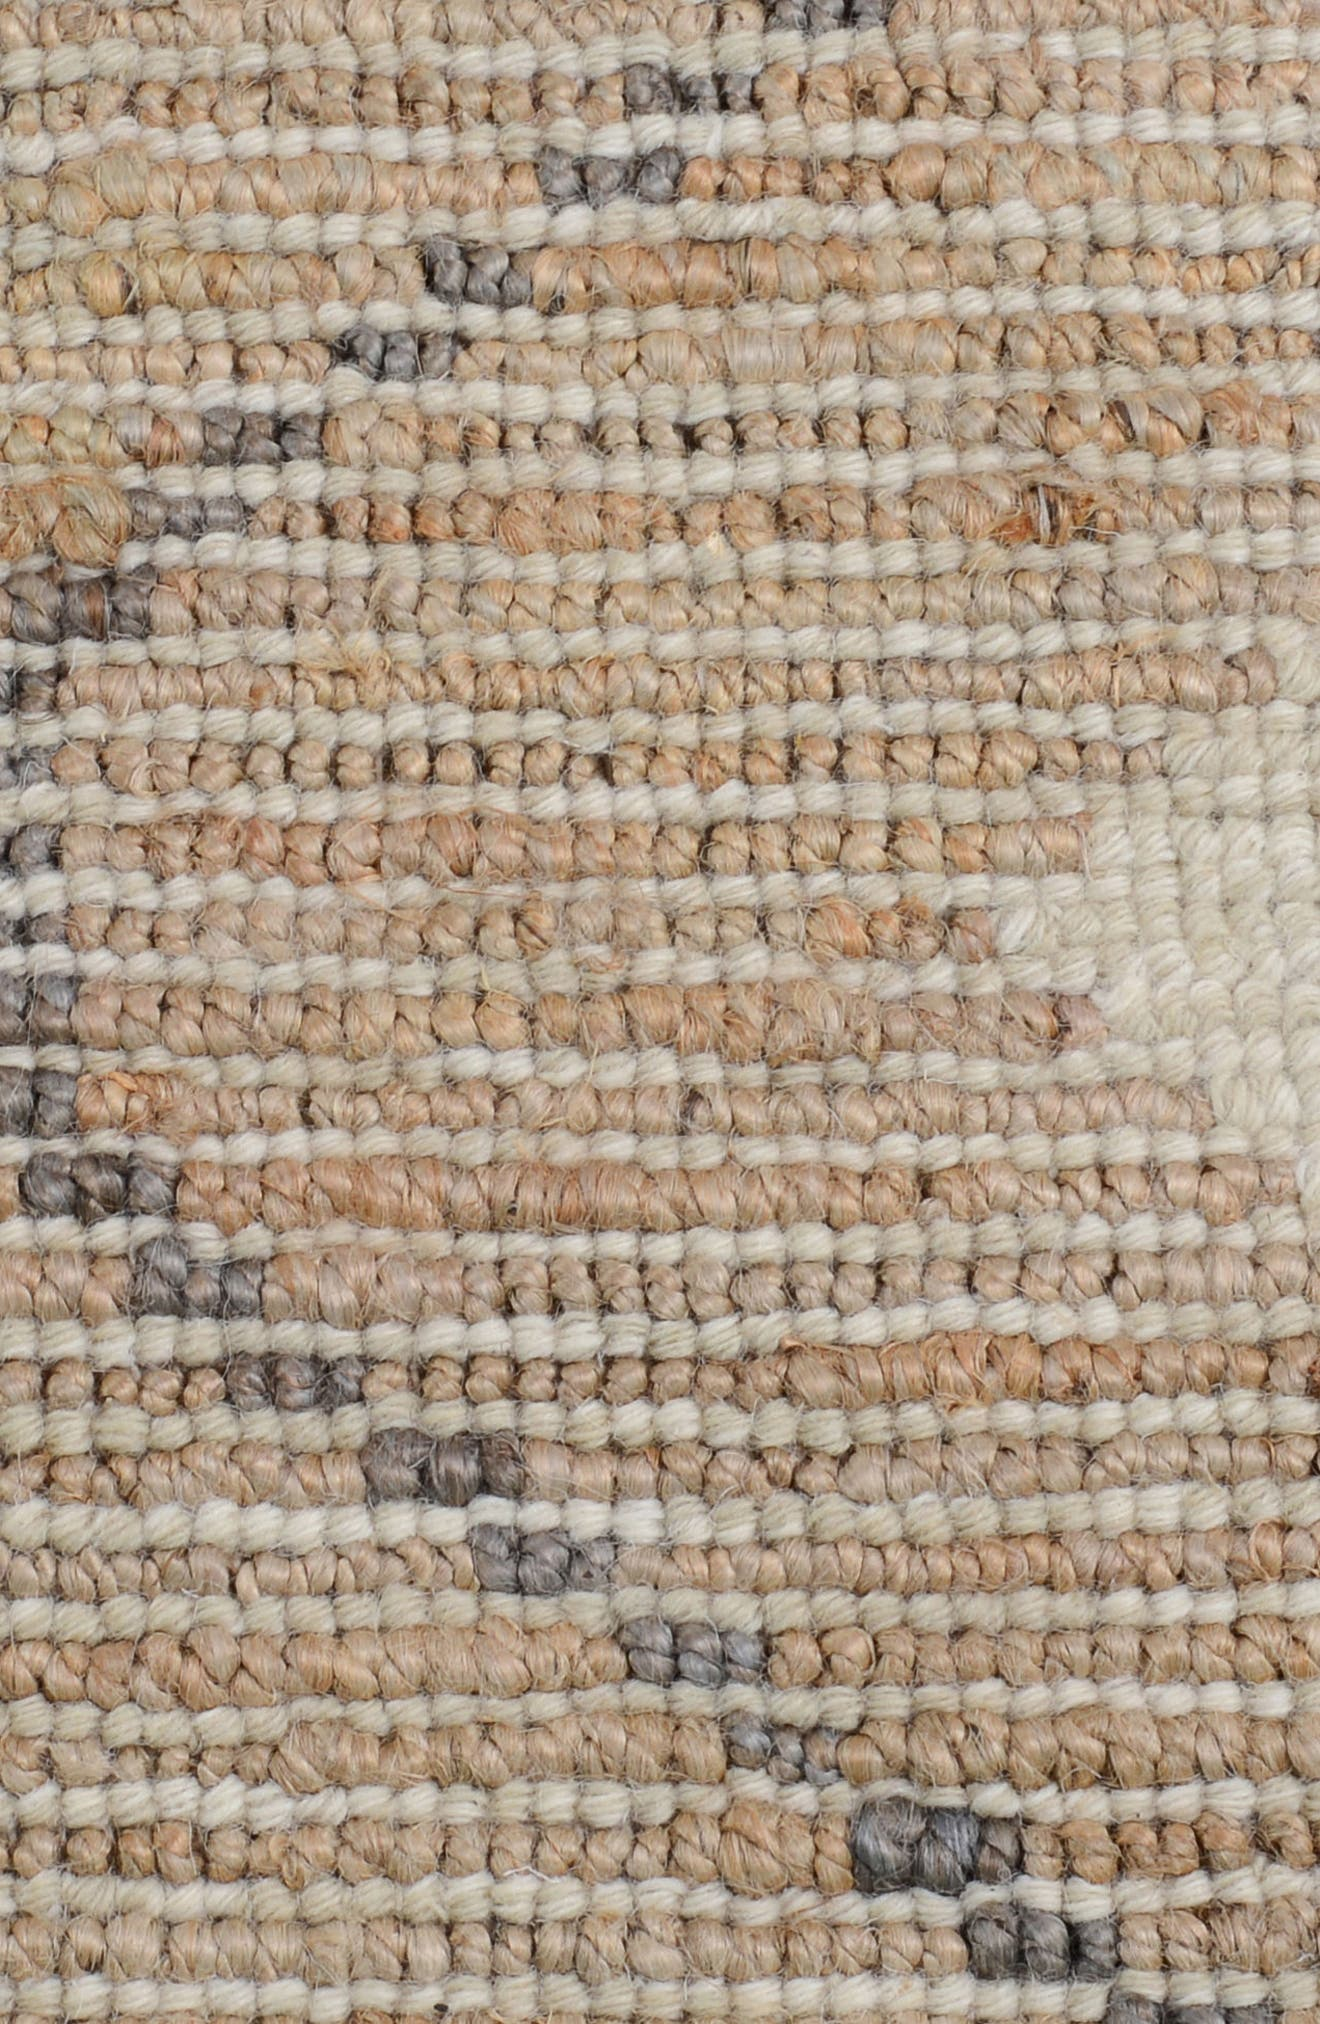 Rustica Handwoven Rug,                             Alternate thumbnail 4, color,                             250